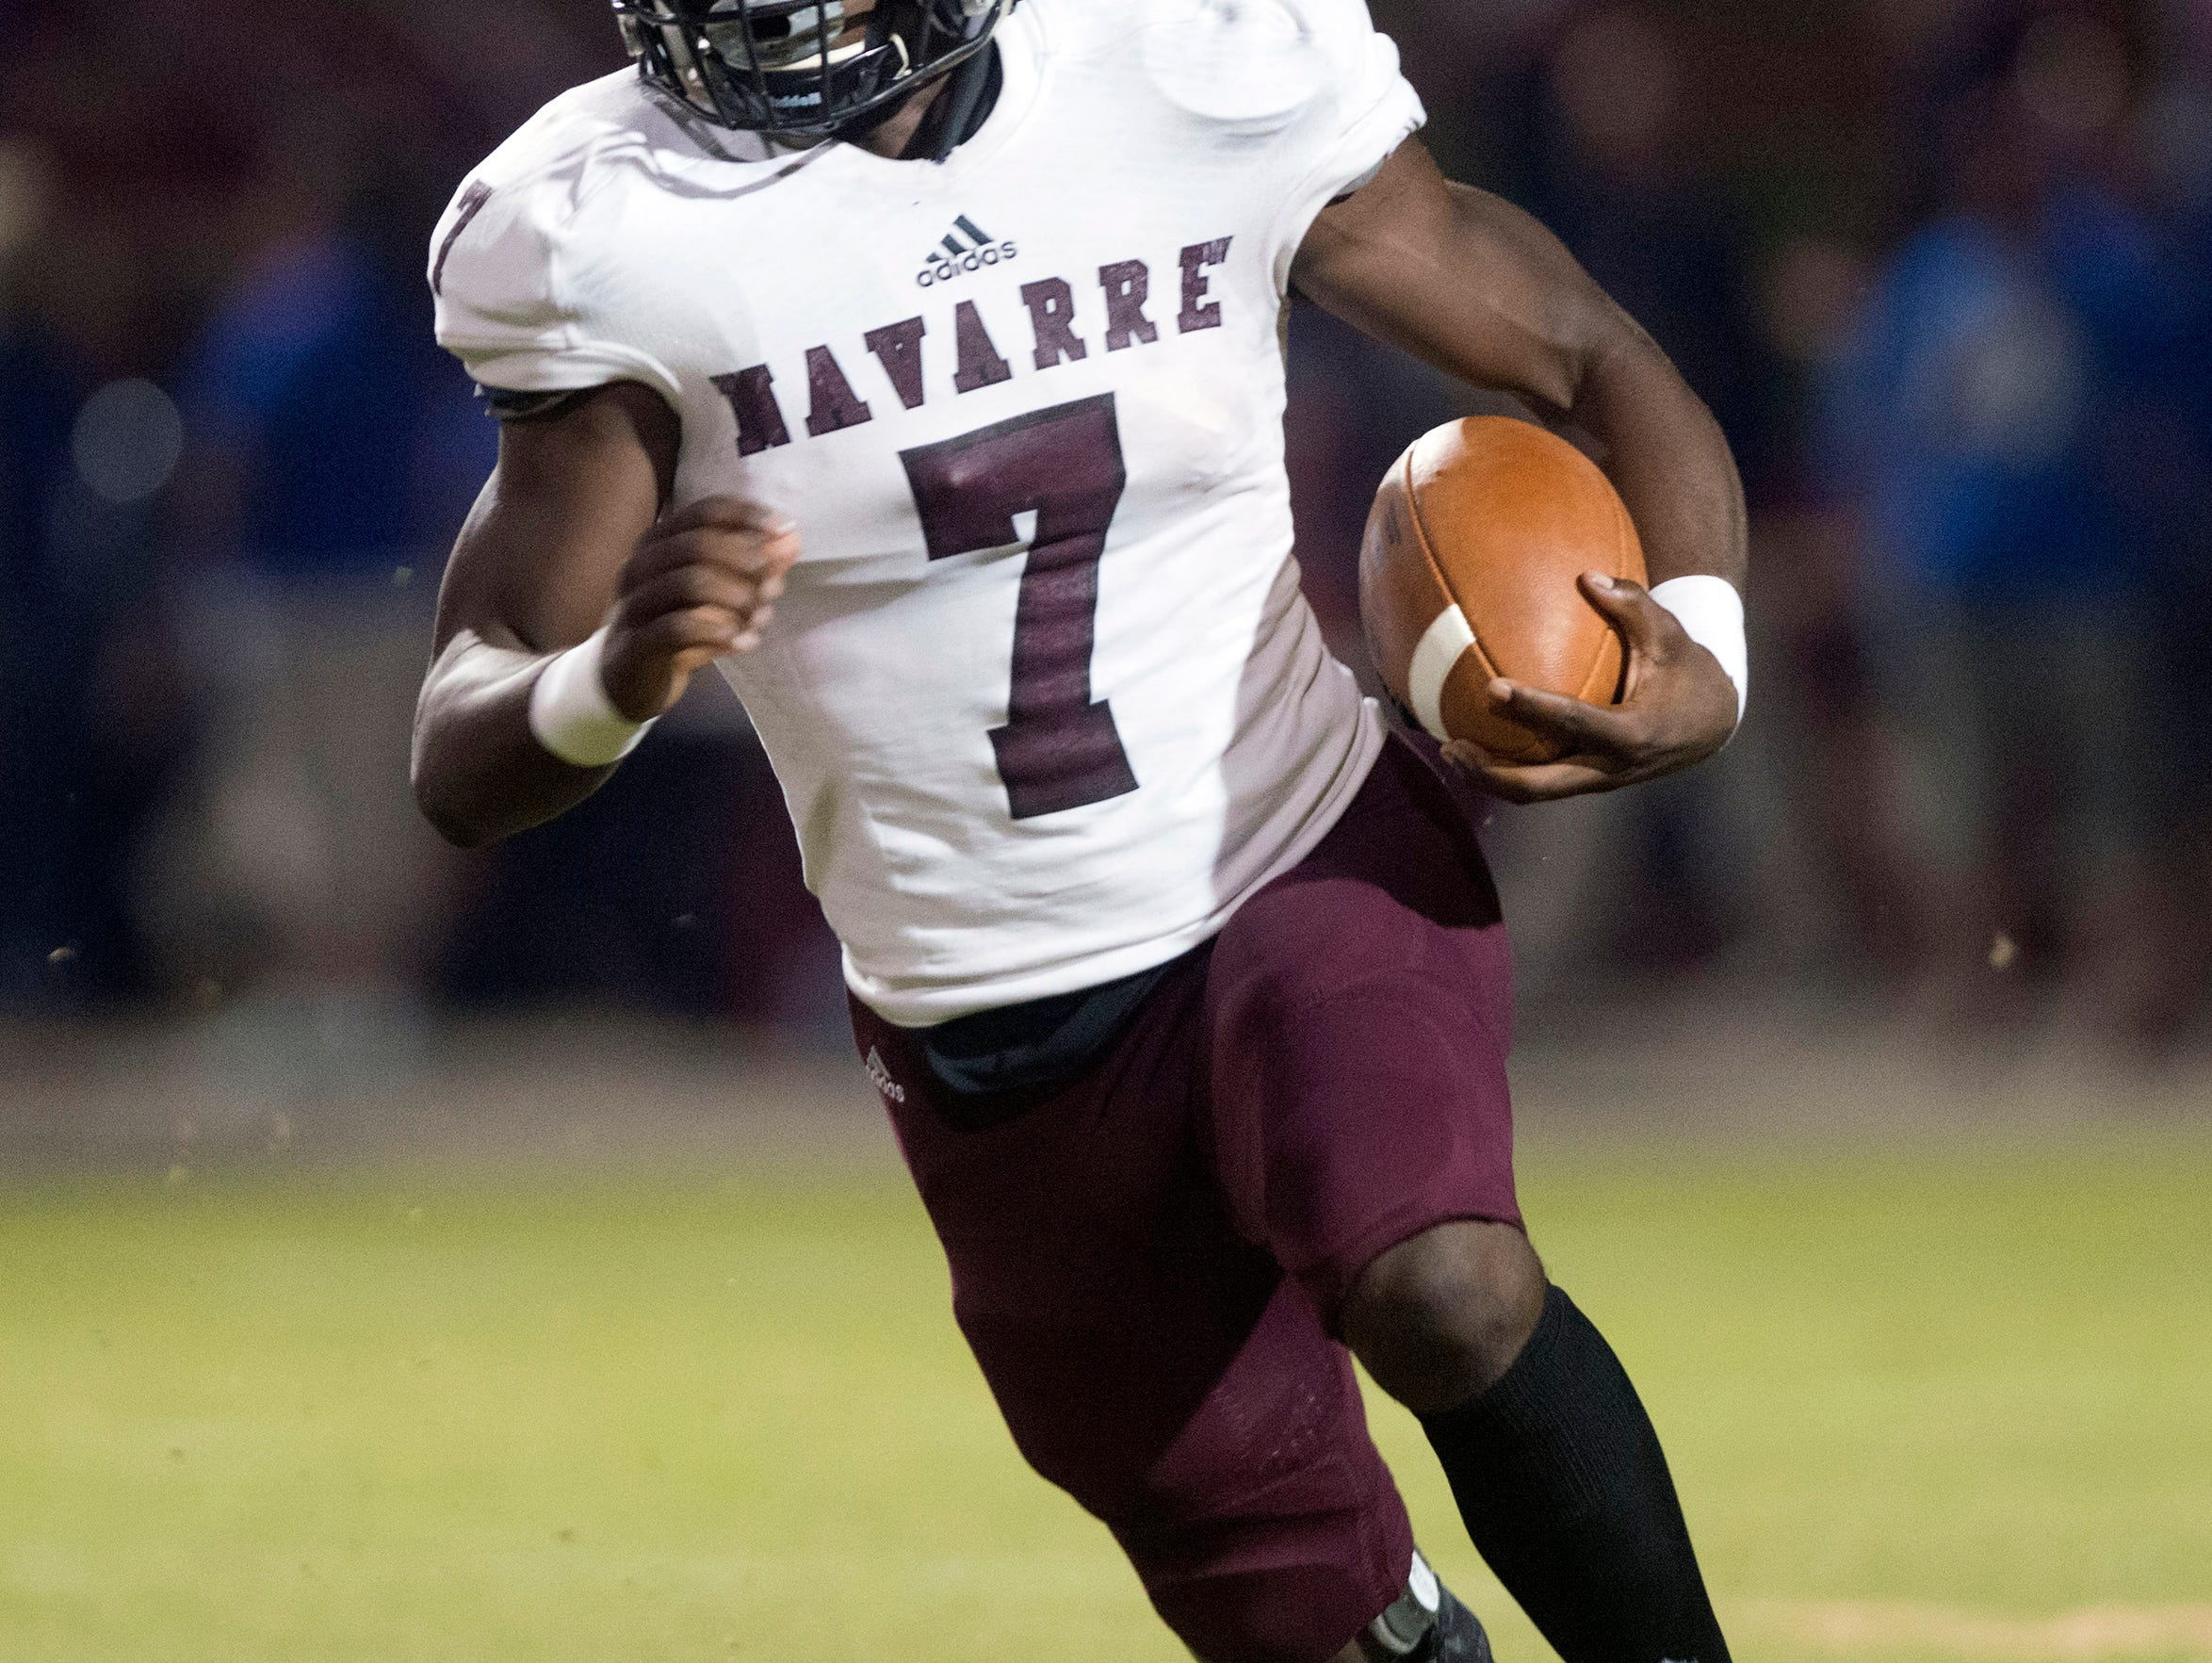 Navarre High School star running back Michael Carter, (No. 7) looks for running room against the Pace High School defense during Friday night's District 2-6A matchup.